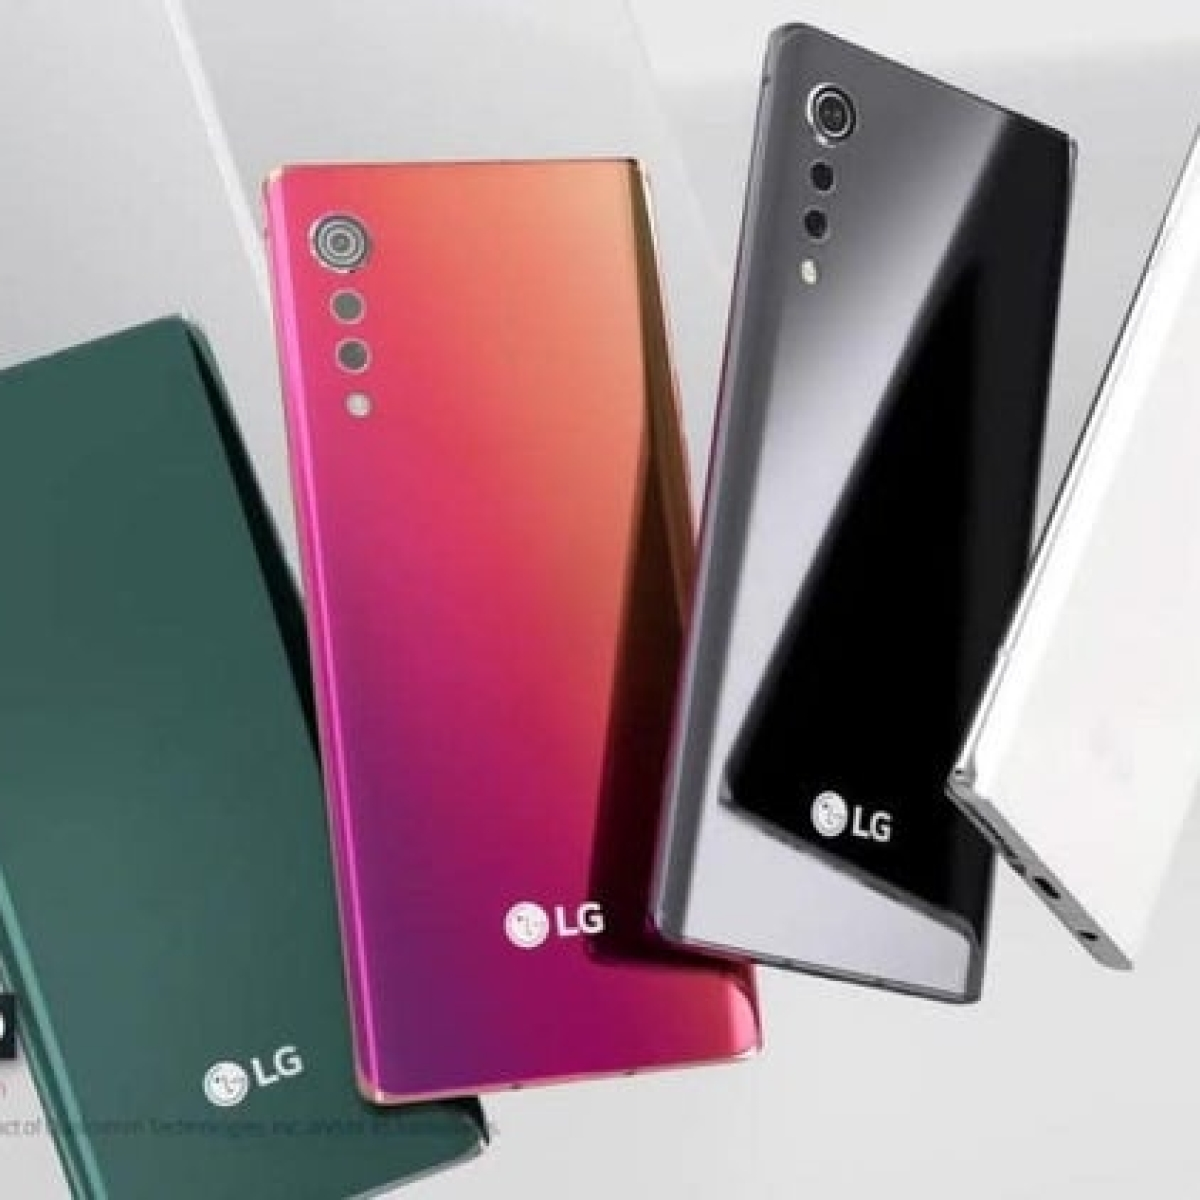 LG's new Velvet smartphone to be revealed on May 7